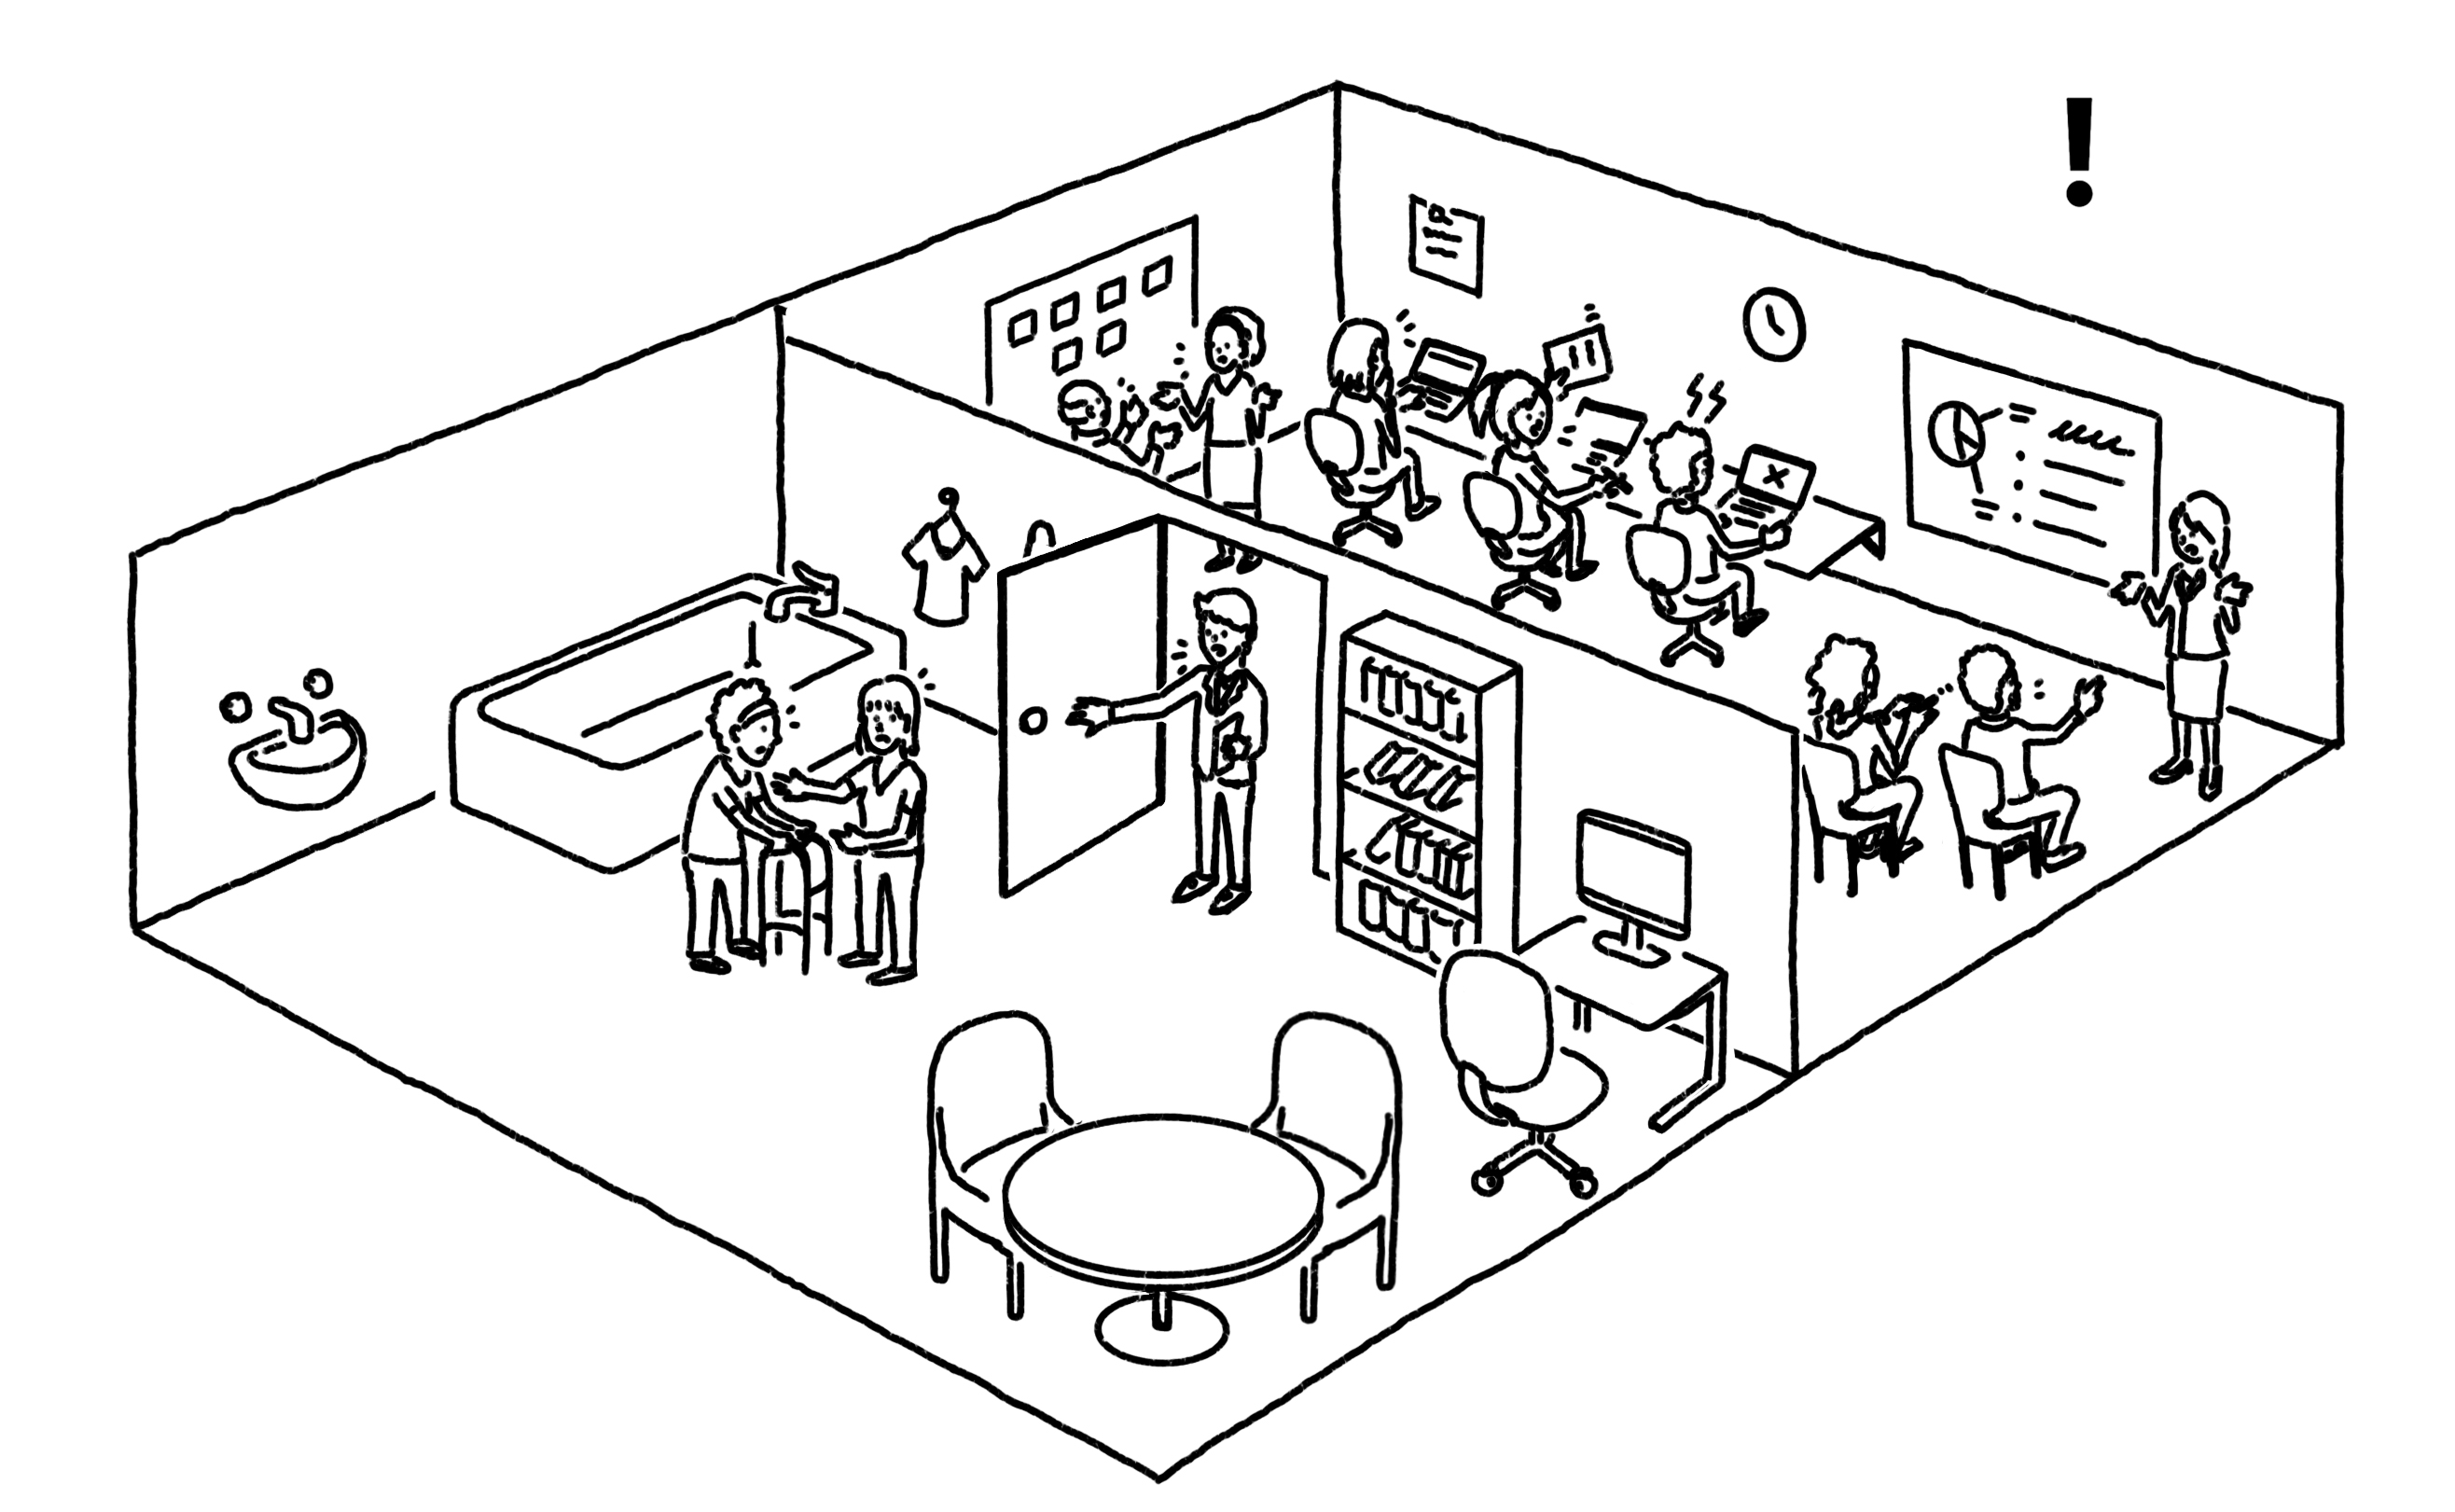 Similar to previous image but with an exclamation mark. Illustration is of a business with a front-room that serves a home care customer, and a back-room where the business operates.